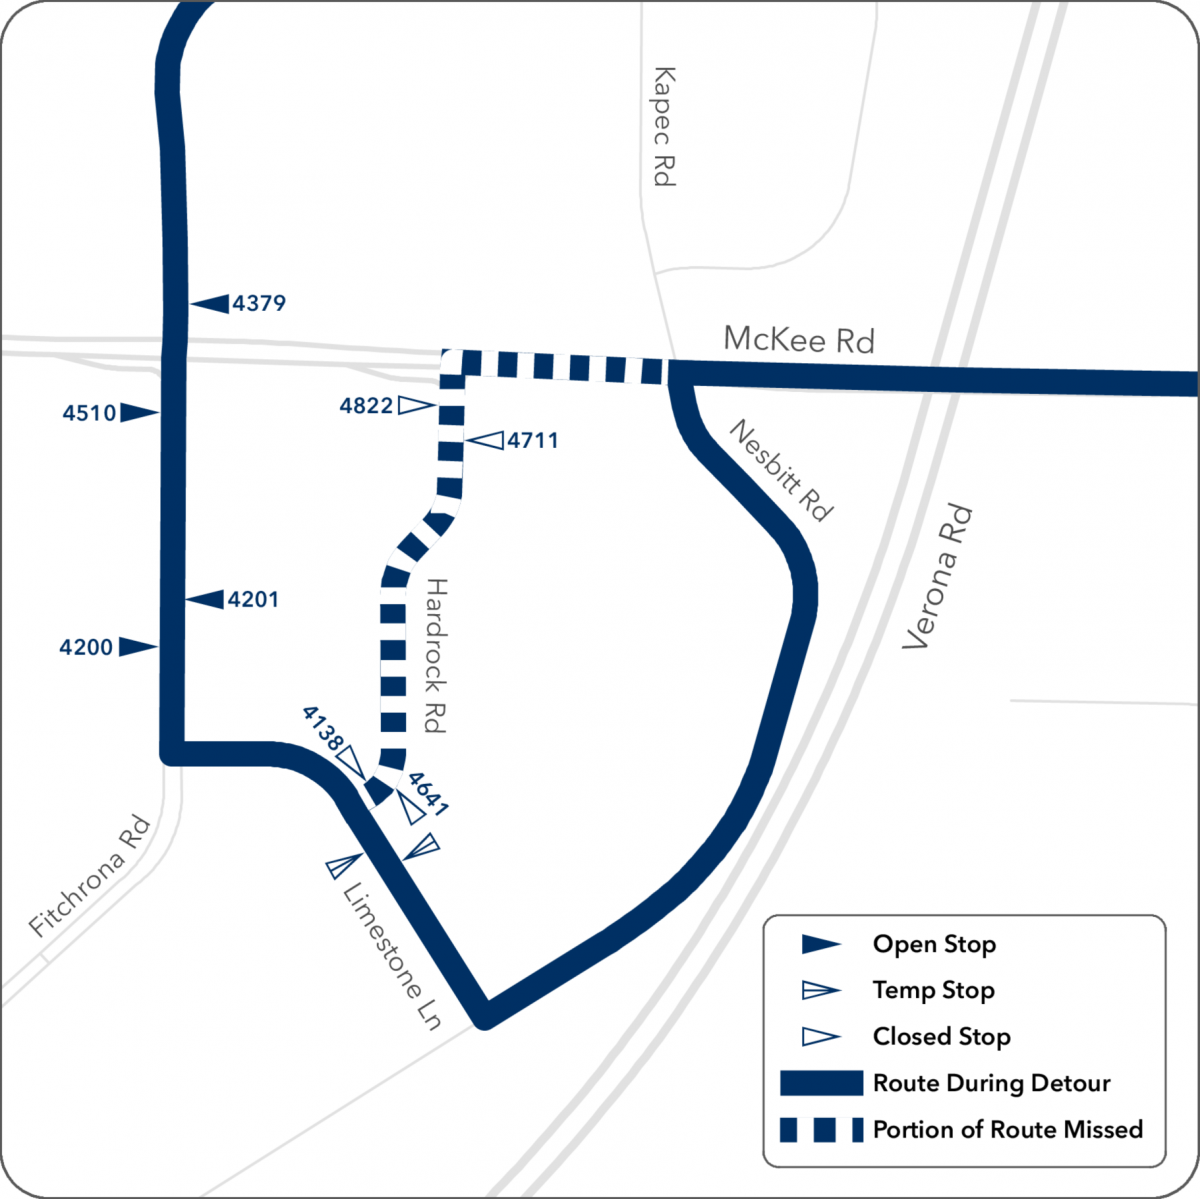 route 59 detour map from hardrock